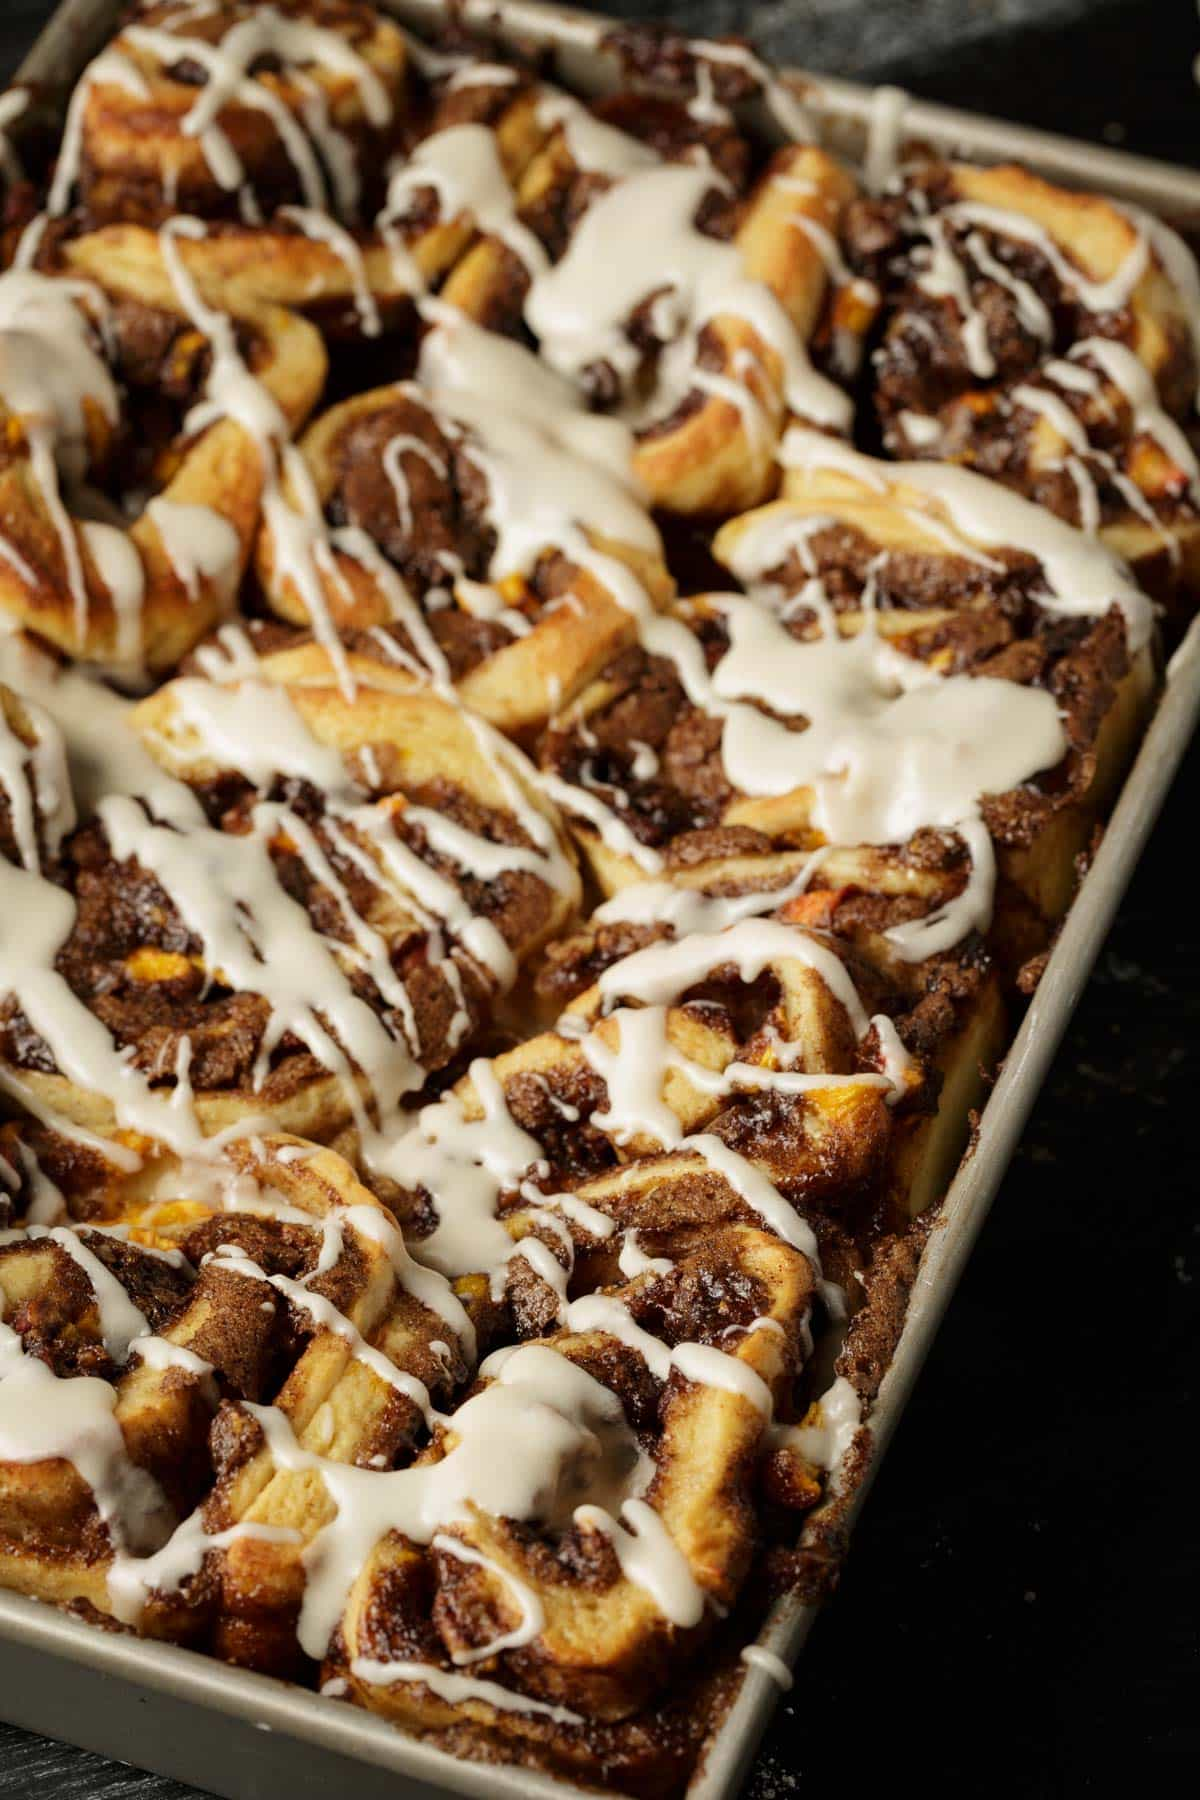 A baking pan of homemade cinnamon rolls with a bourbon glaze drizzled over the top.